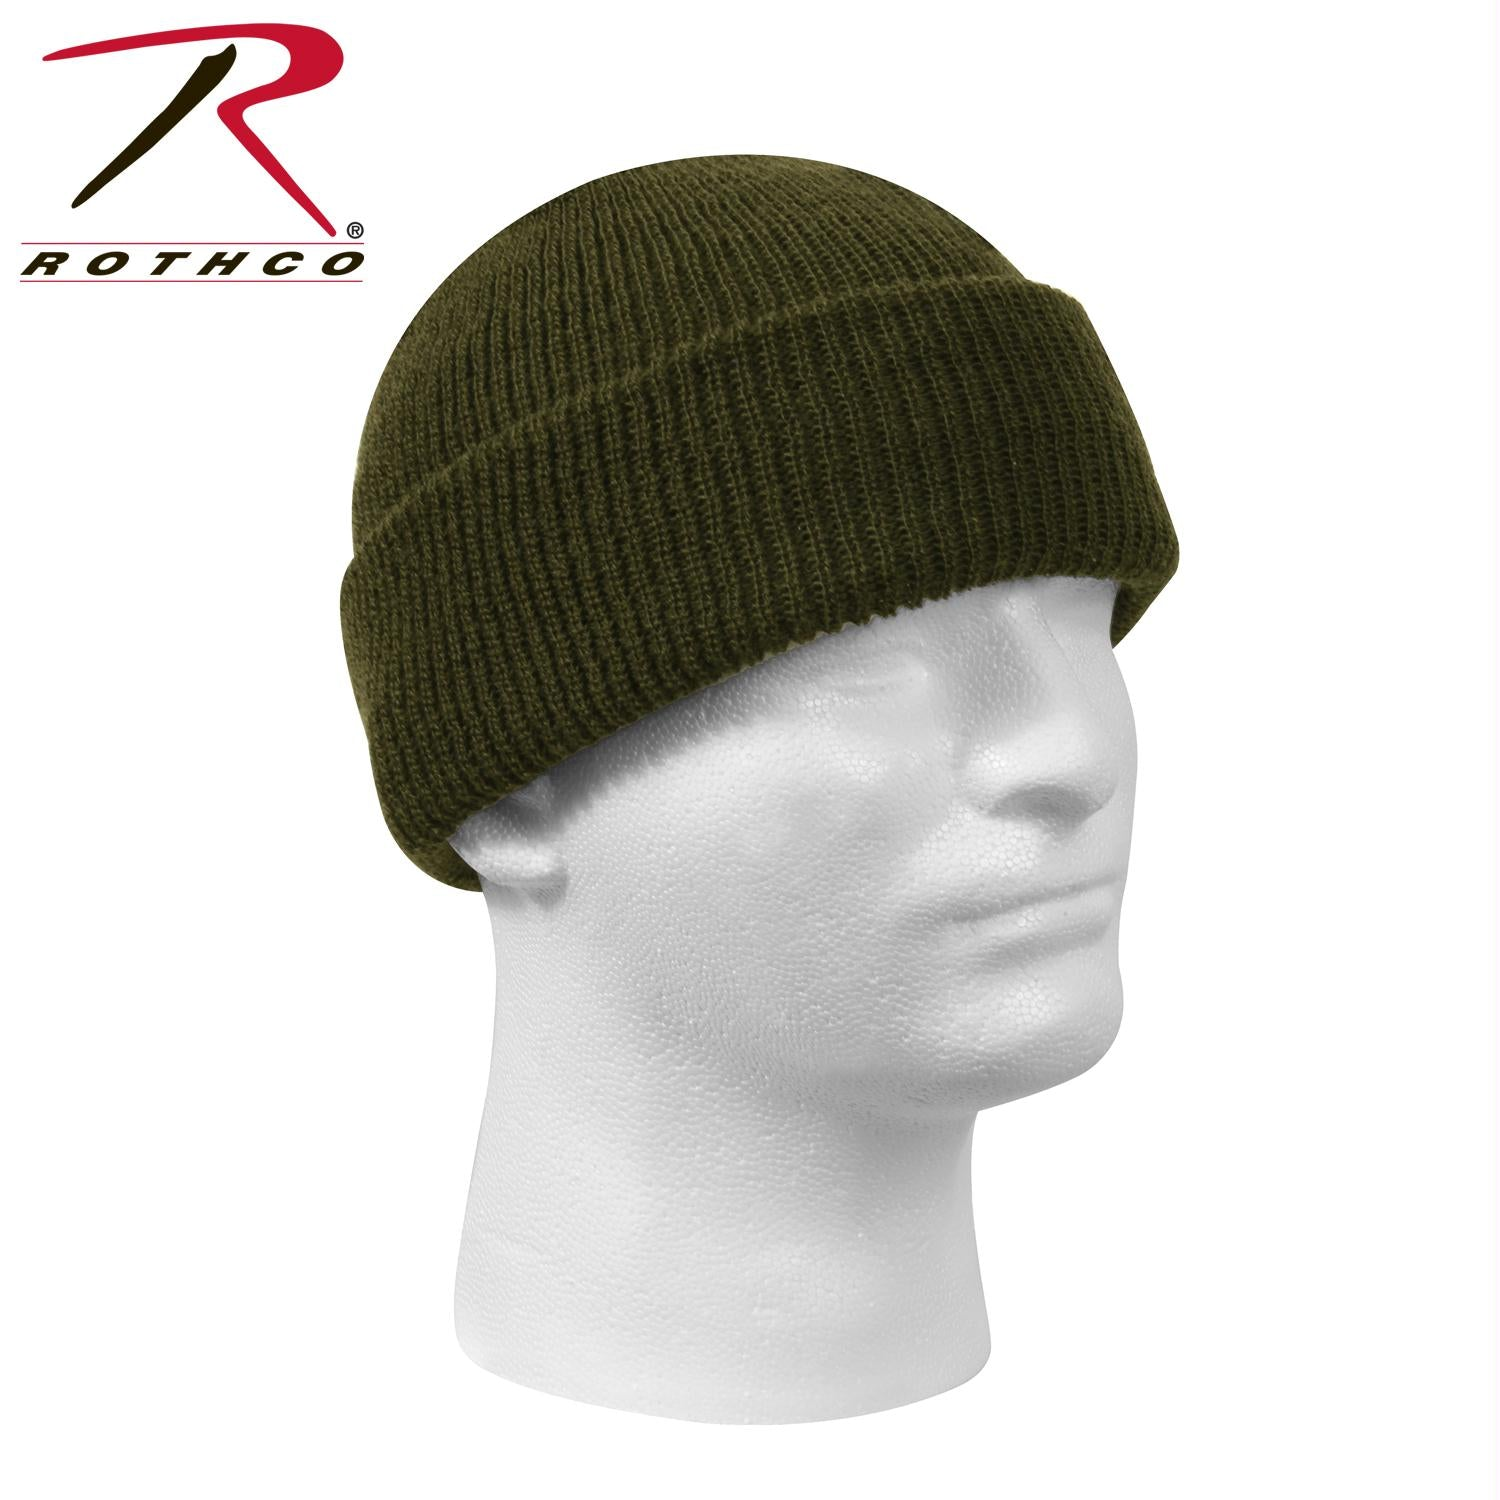 Genuine G.I. Wool Watch Cap - Olive Drab